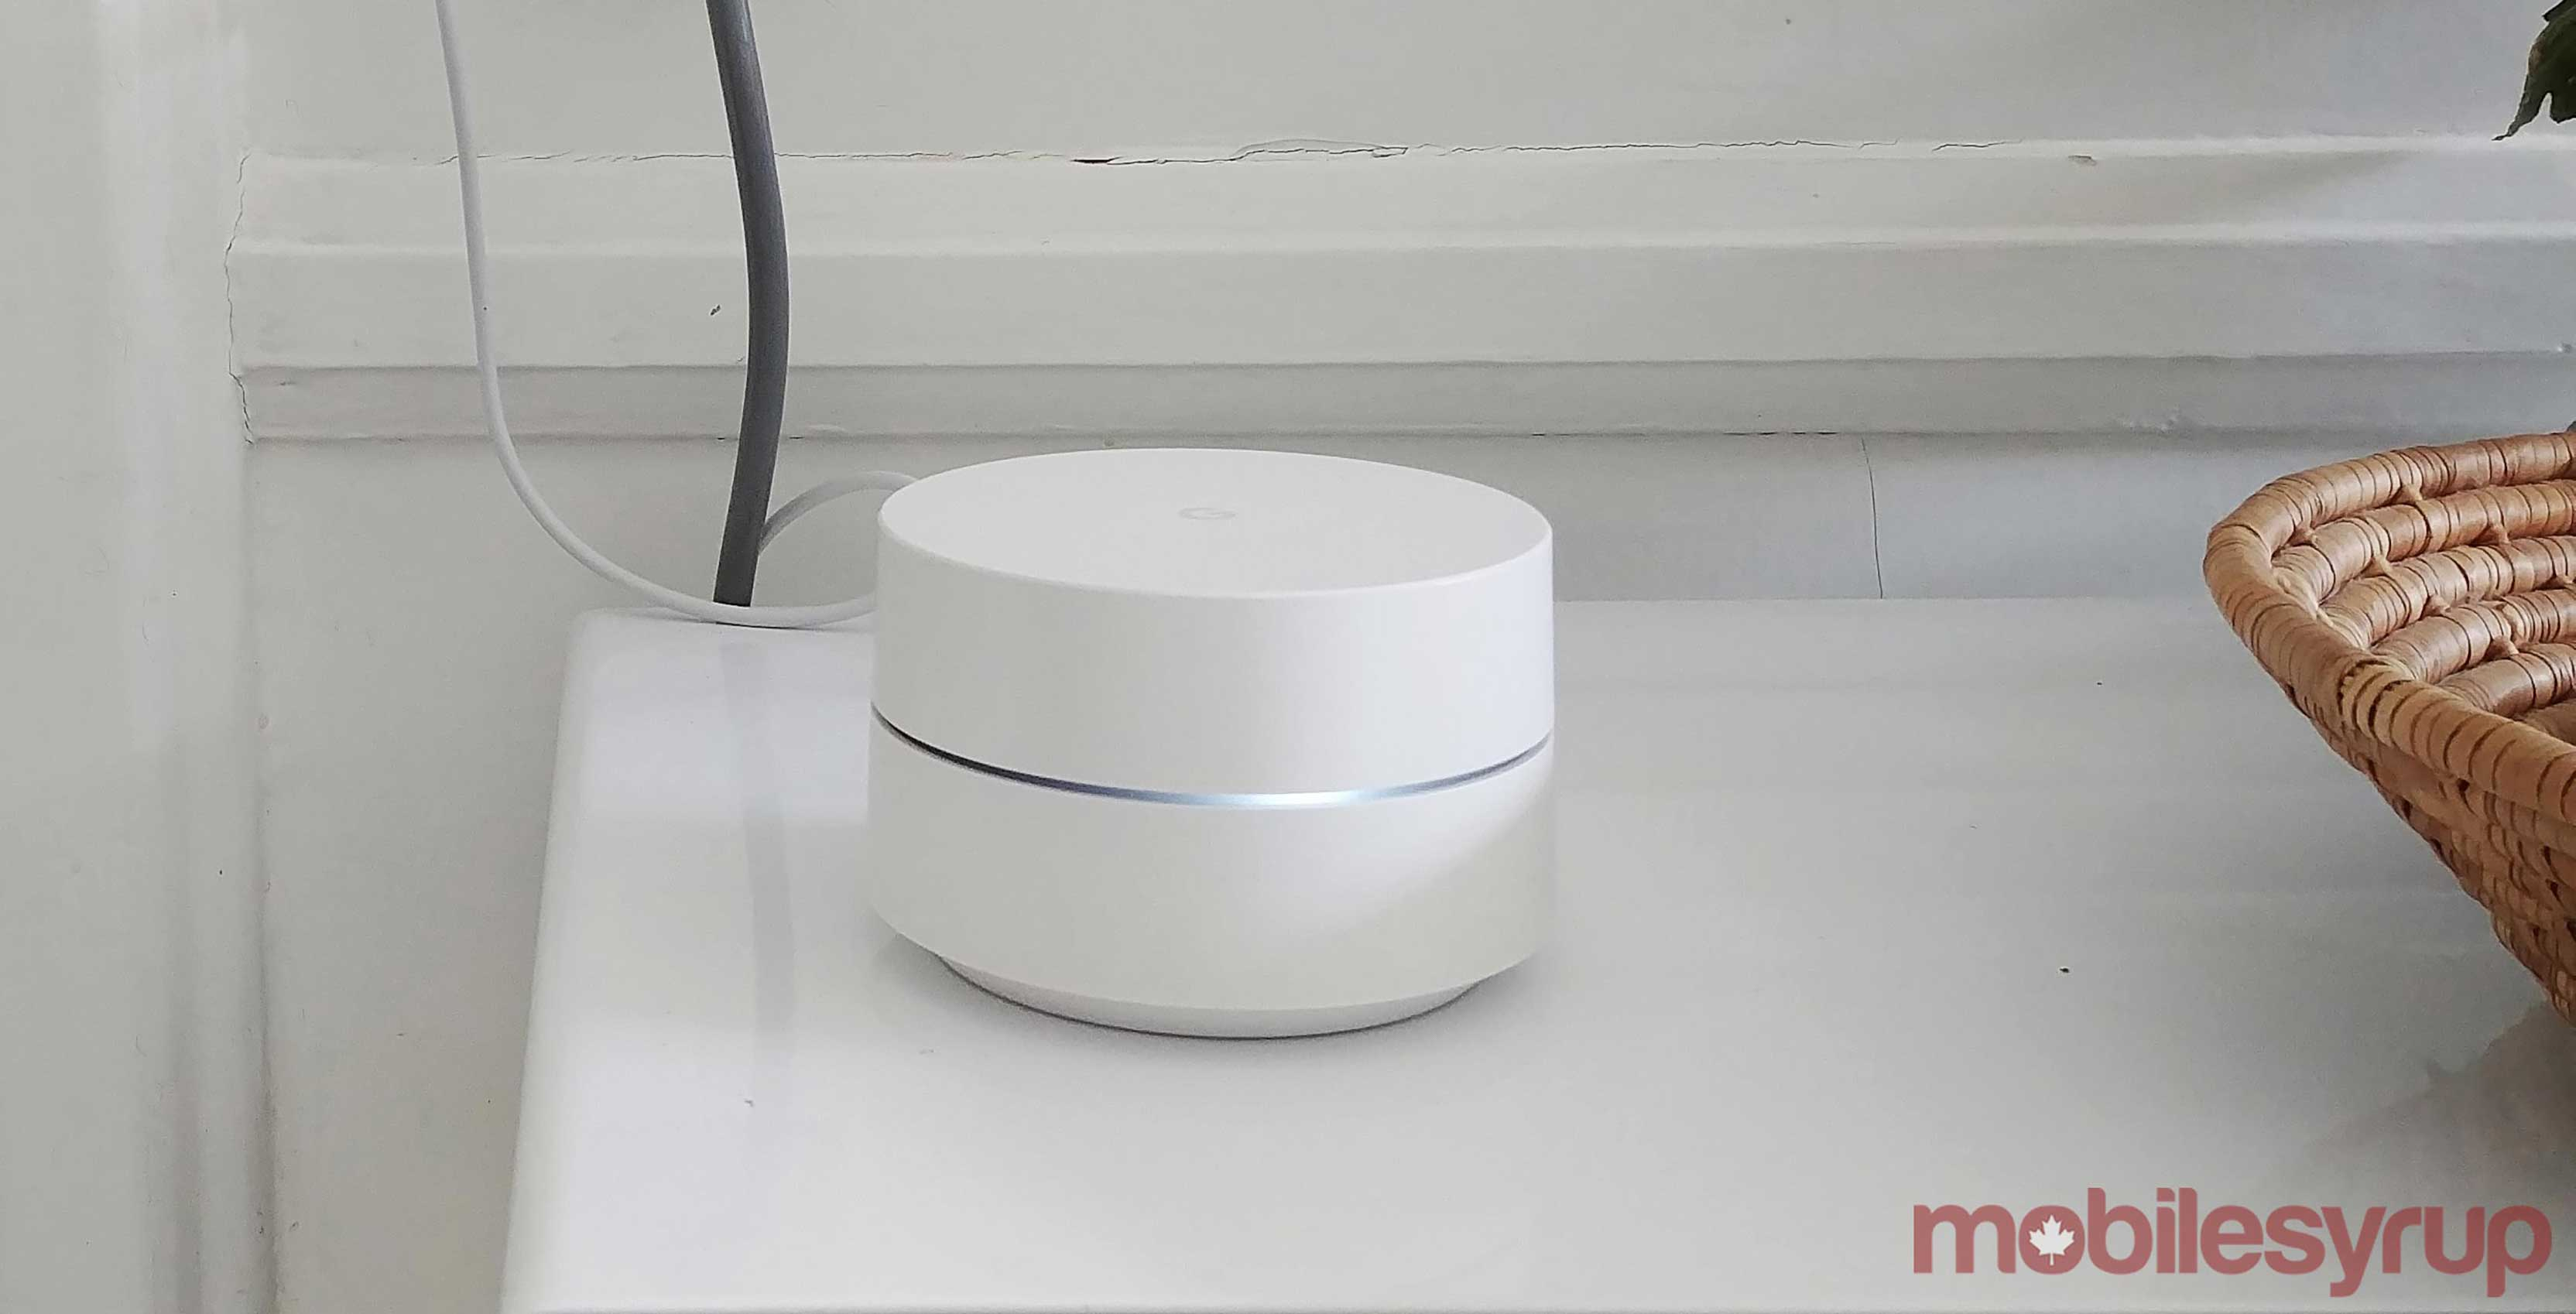 Google Wifi now supports speed tests for all the connected devices